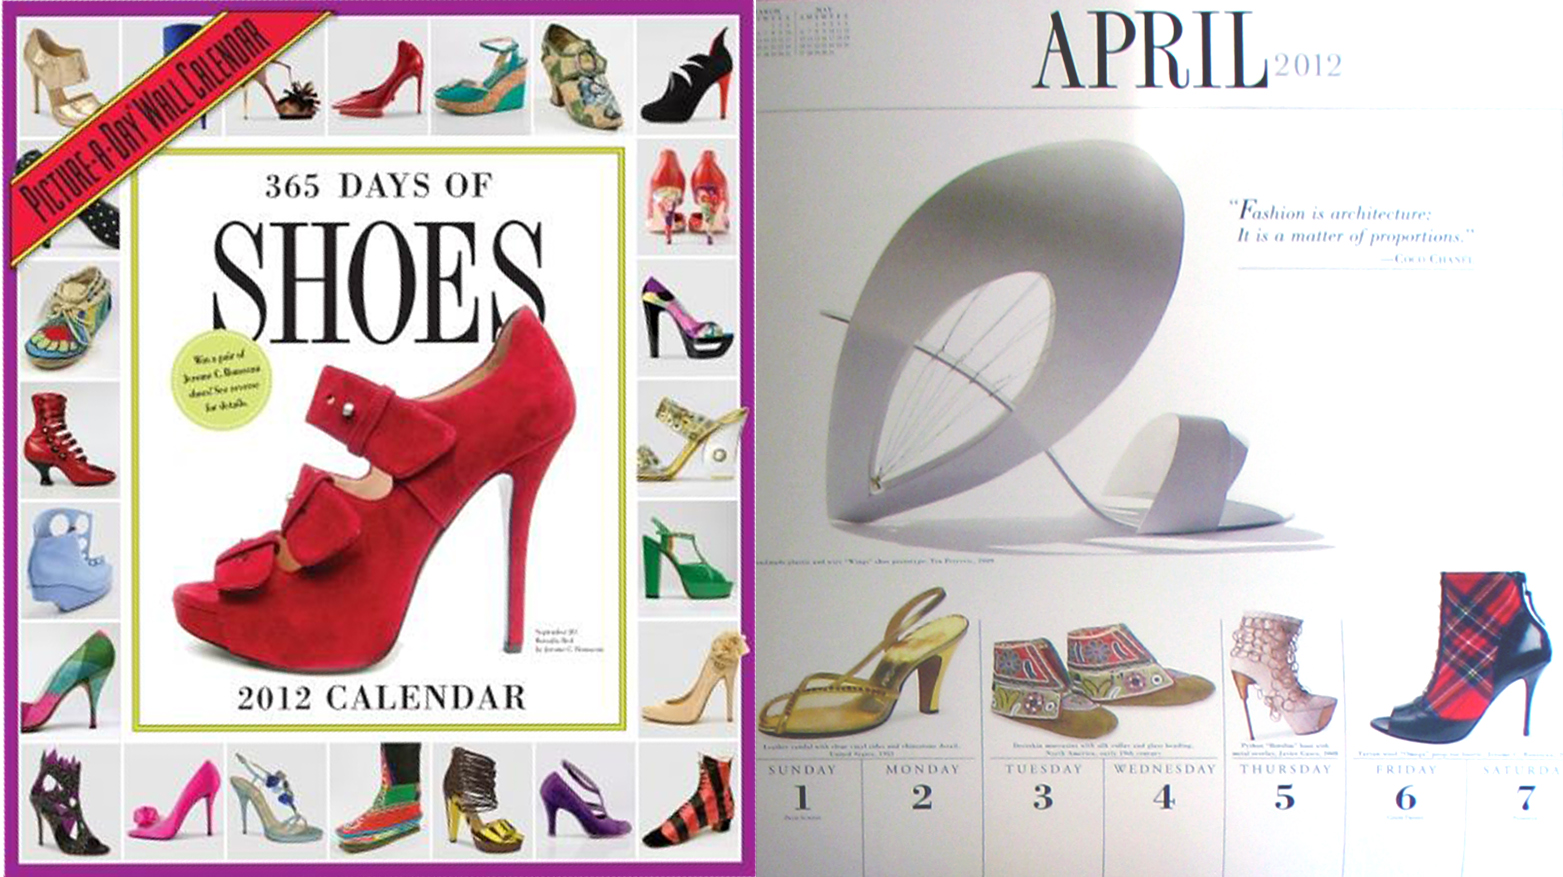 365 days of shoes 2012